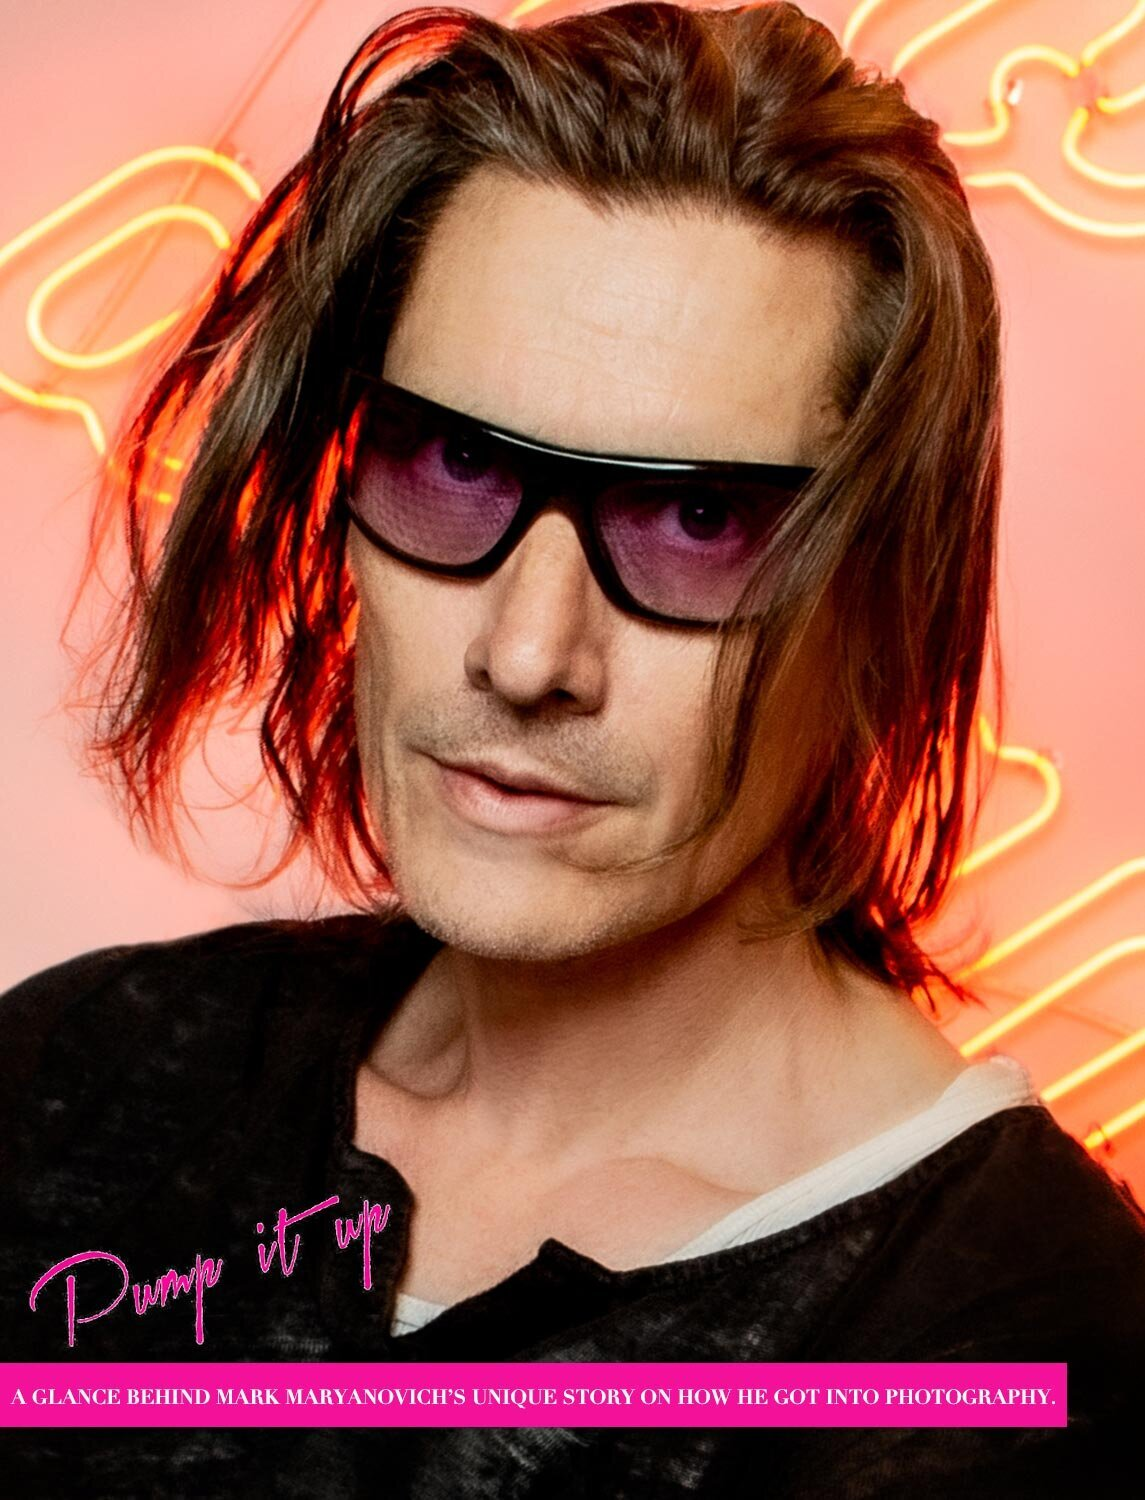 Los Angeles Magazine Interview featuring Photographer Mark Maryanovich self portrait wearing sunglasses against pink background with neon words page 1